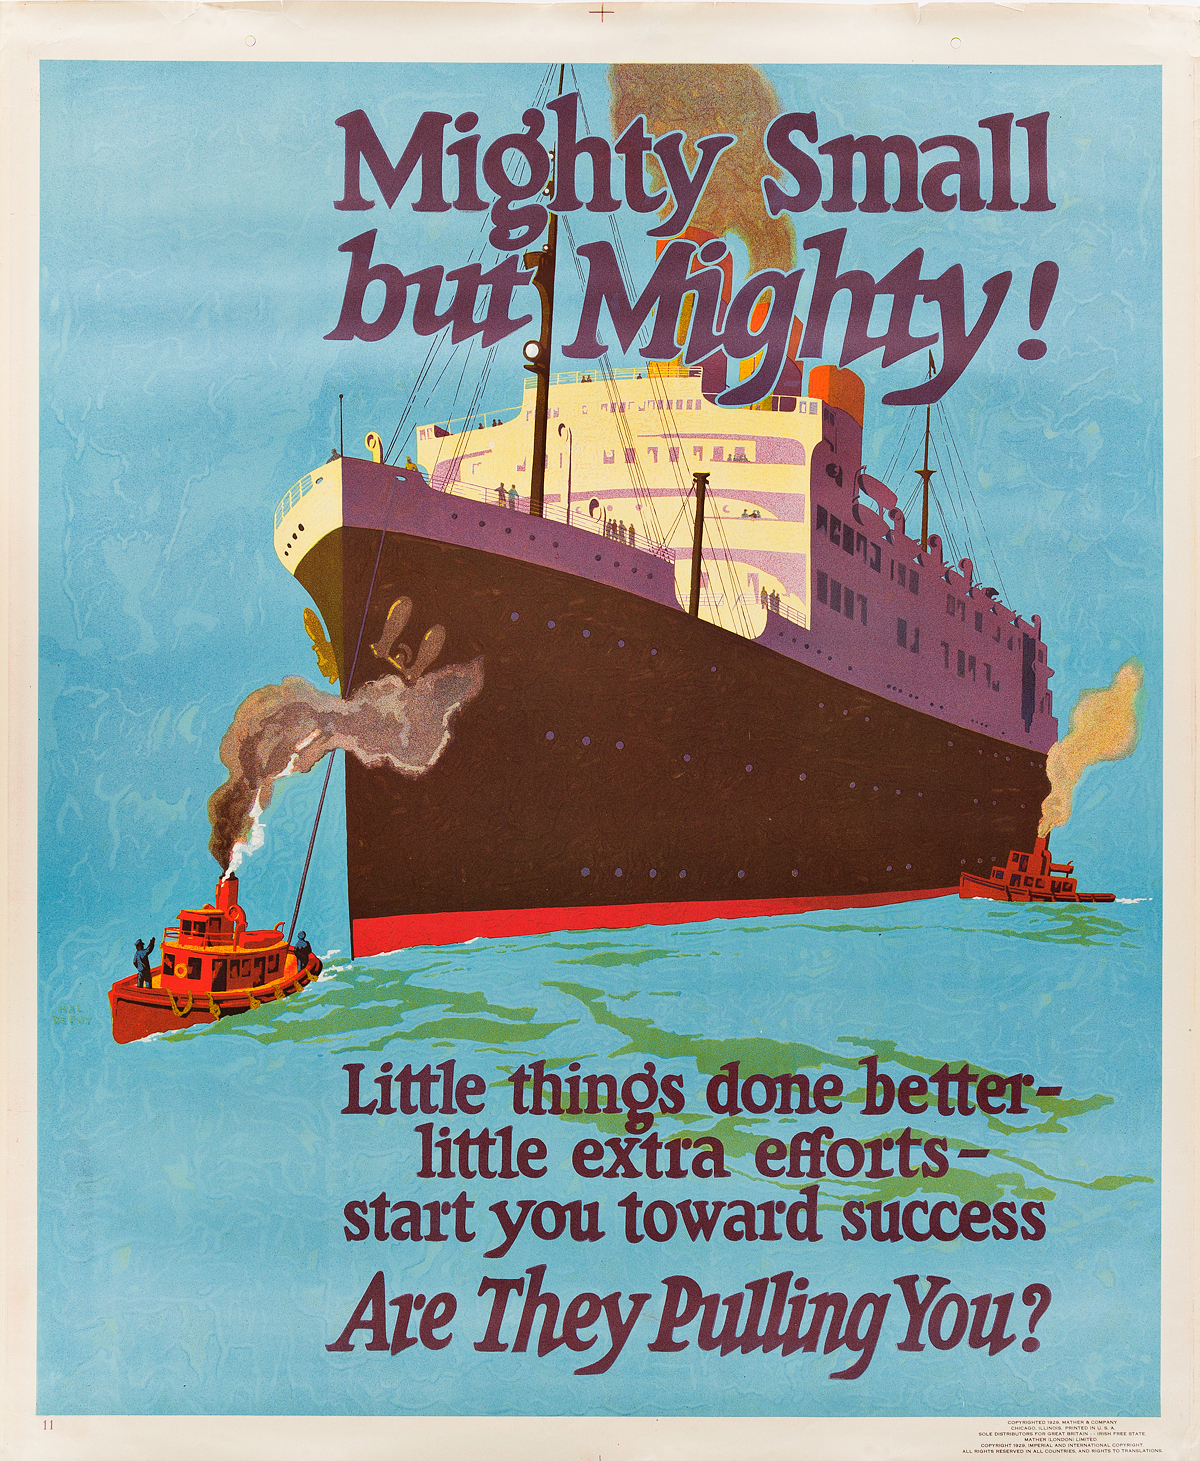 DESIGNER-UNKNOWN-MIGHTY-SMALL-BUT-MIGHTY--ARE-THEY-PULLING-Y